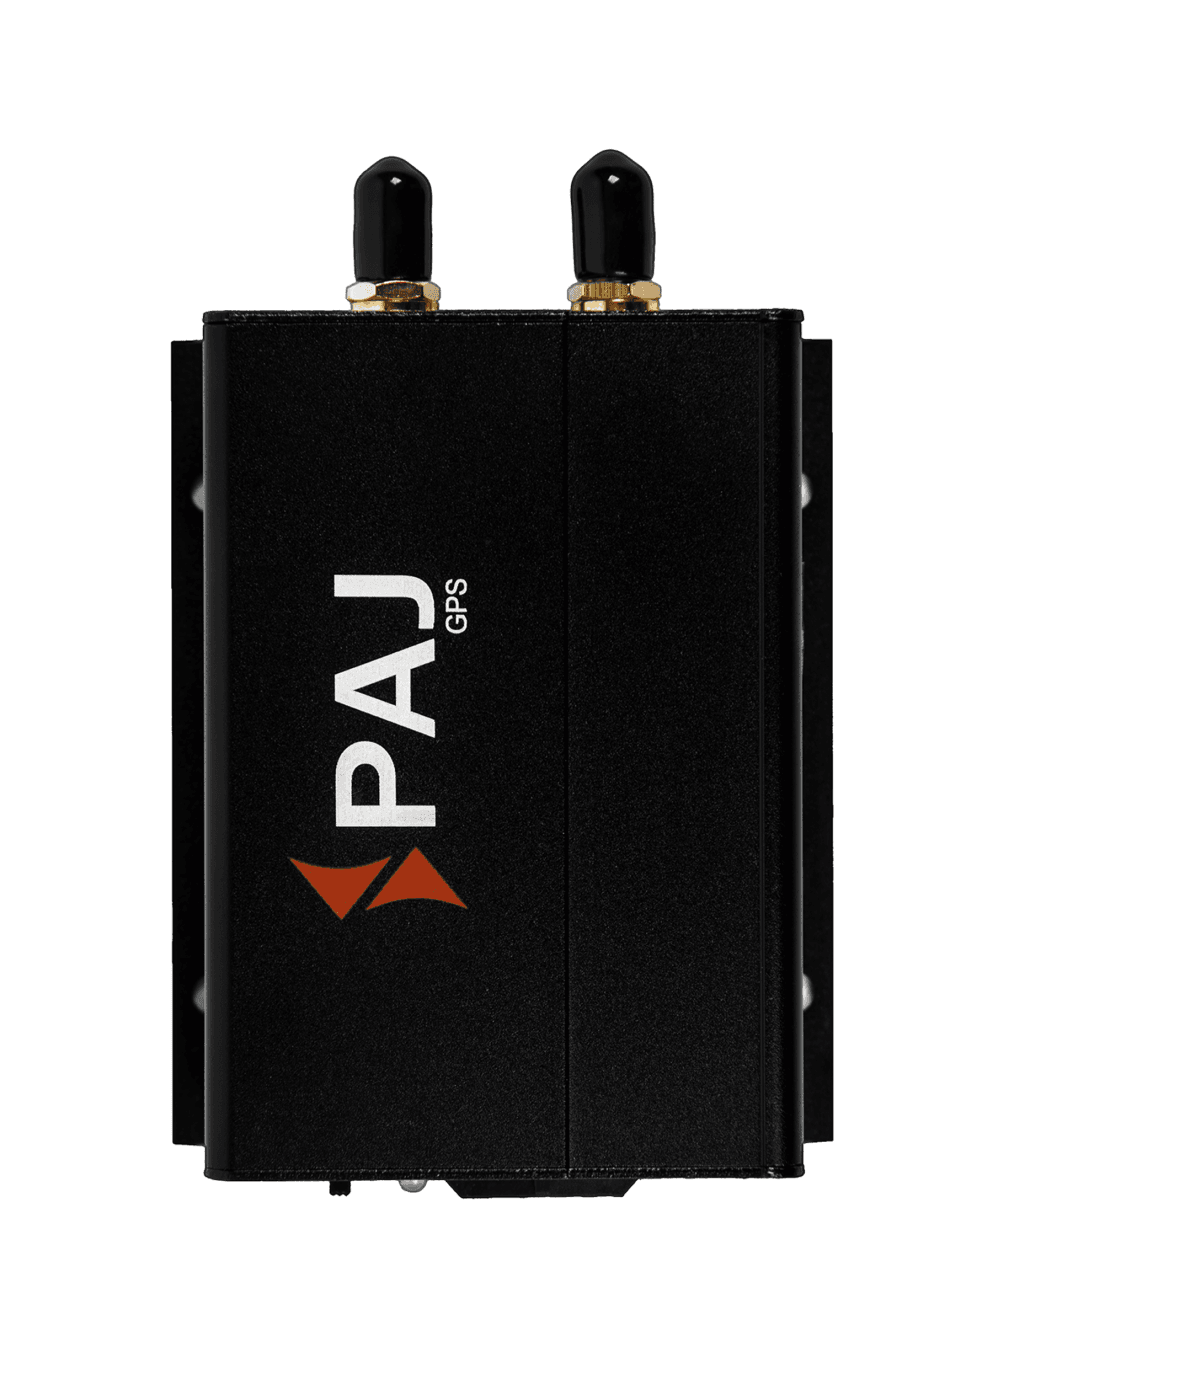 PROFESSIONAL 1 1185x1400 - GPS-Tracker für Taxis